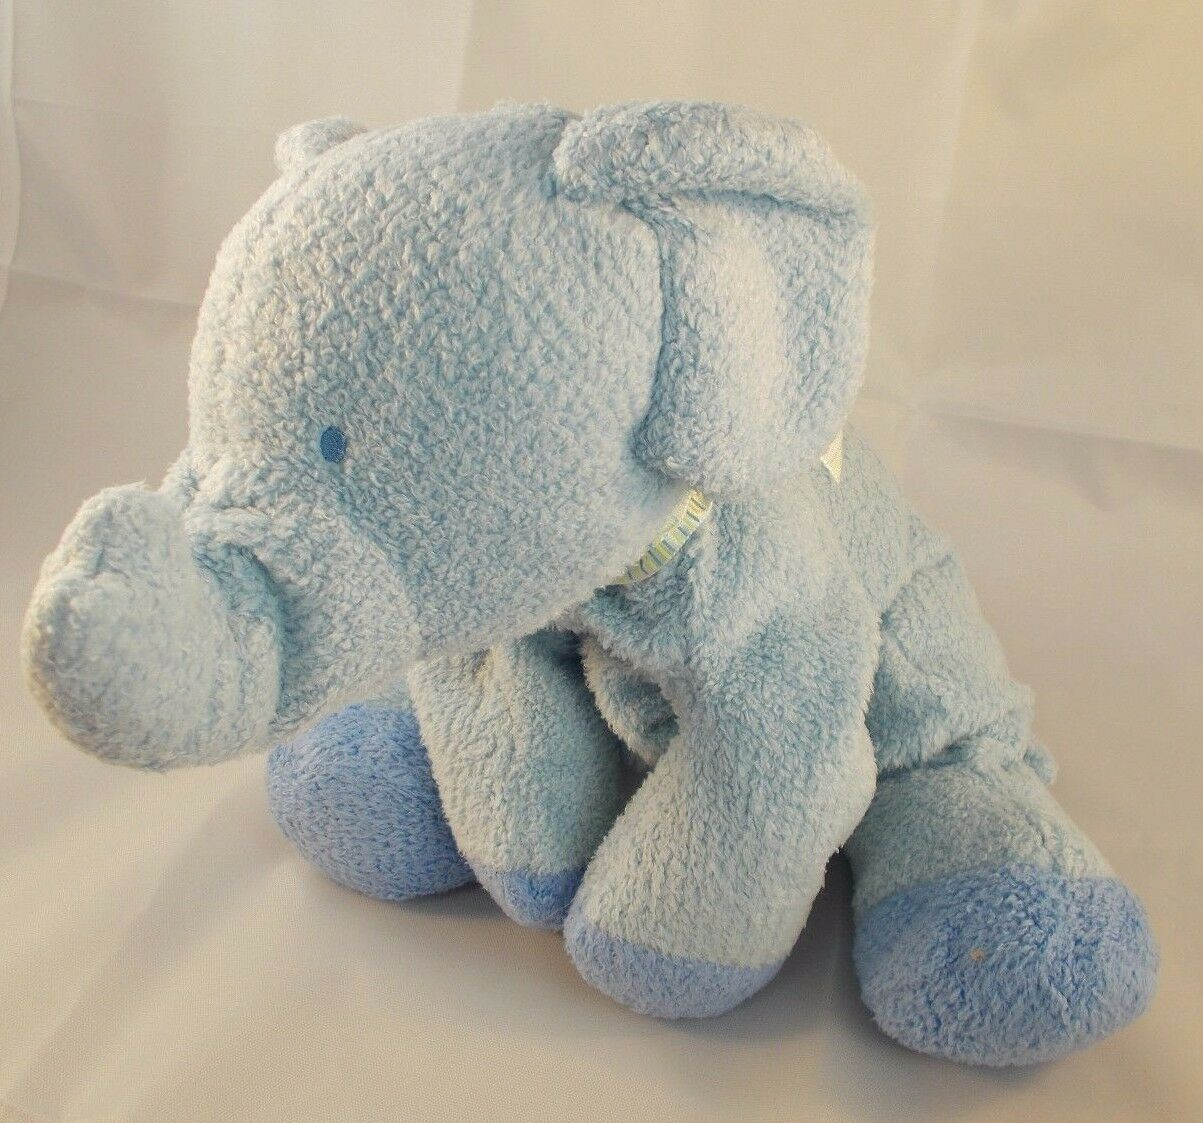 "Primary image for Carter's Child of Mine Bean Elephant Plush Floppy 12"" Long Stuffed Animal toy"